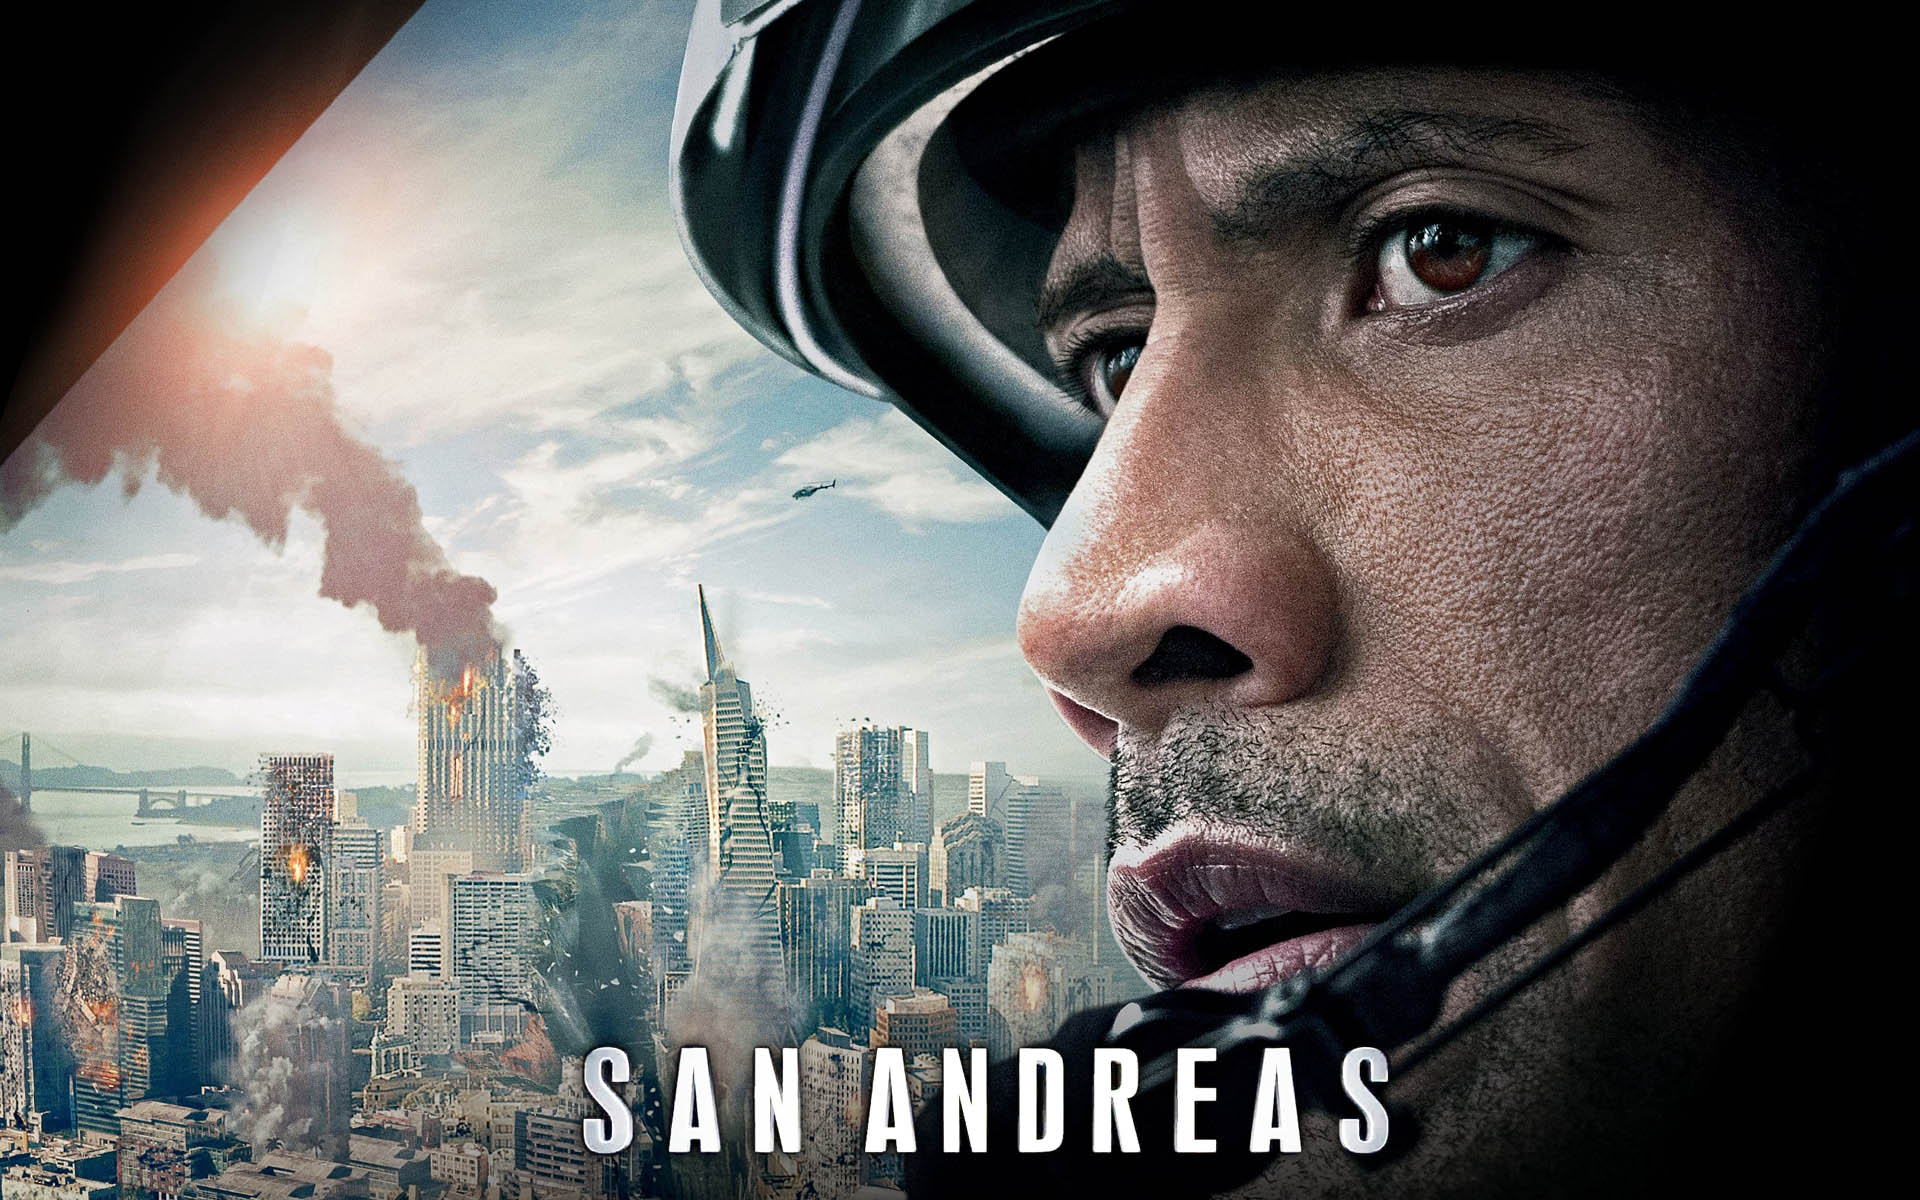 San Andreas: The Rock scopre i disaster movie